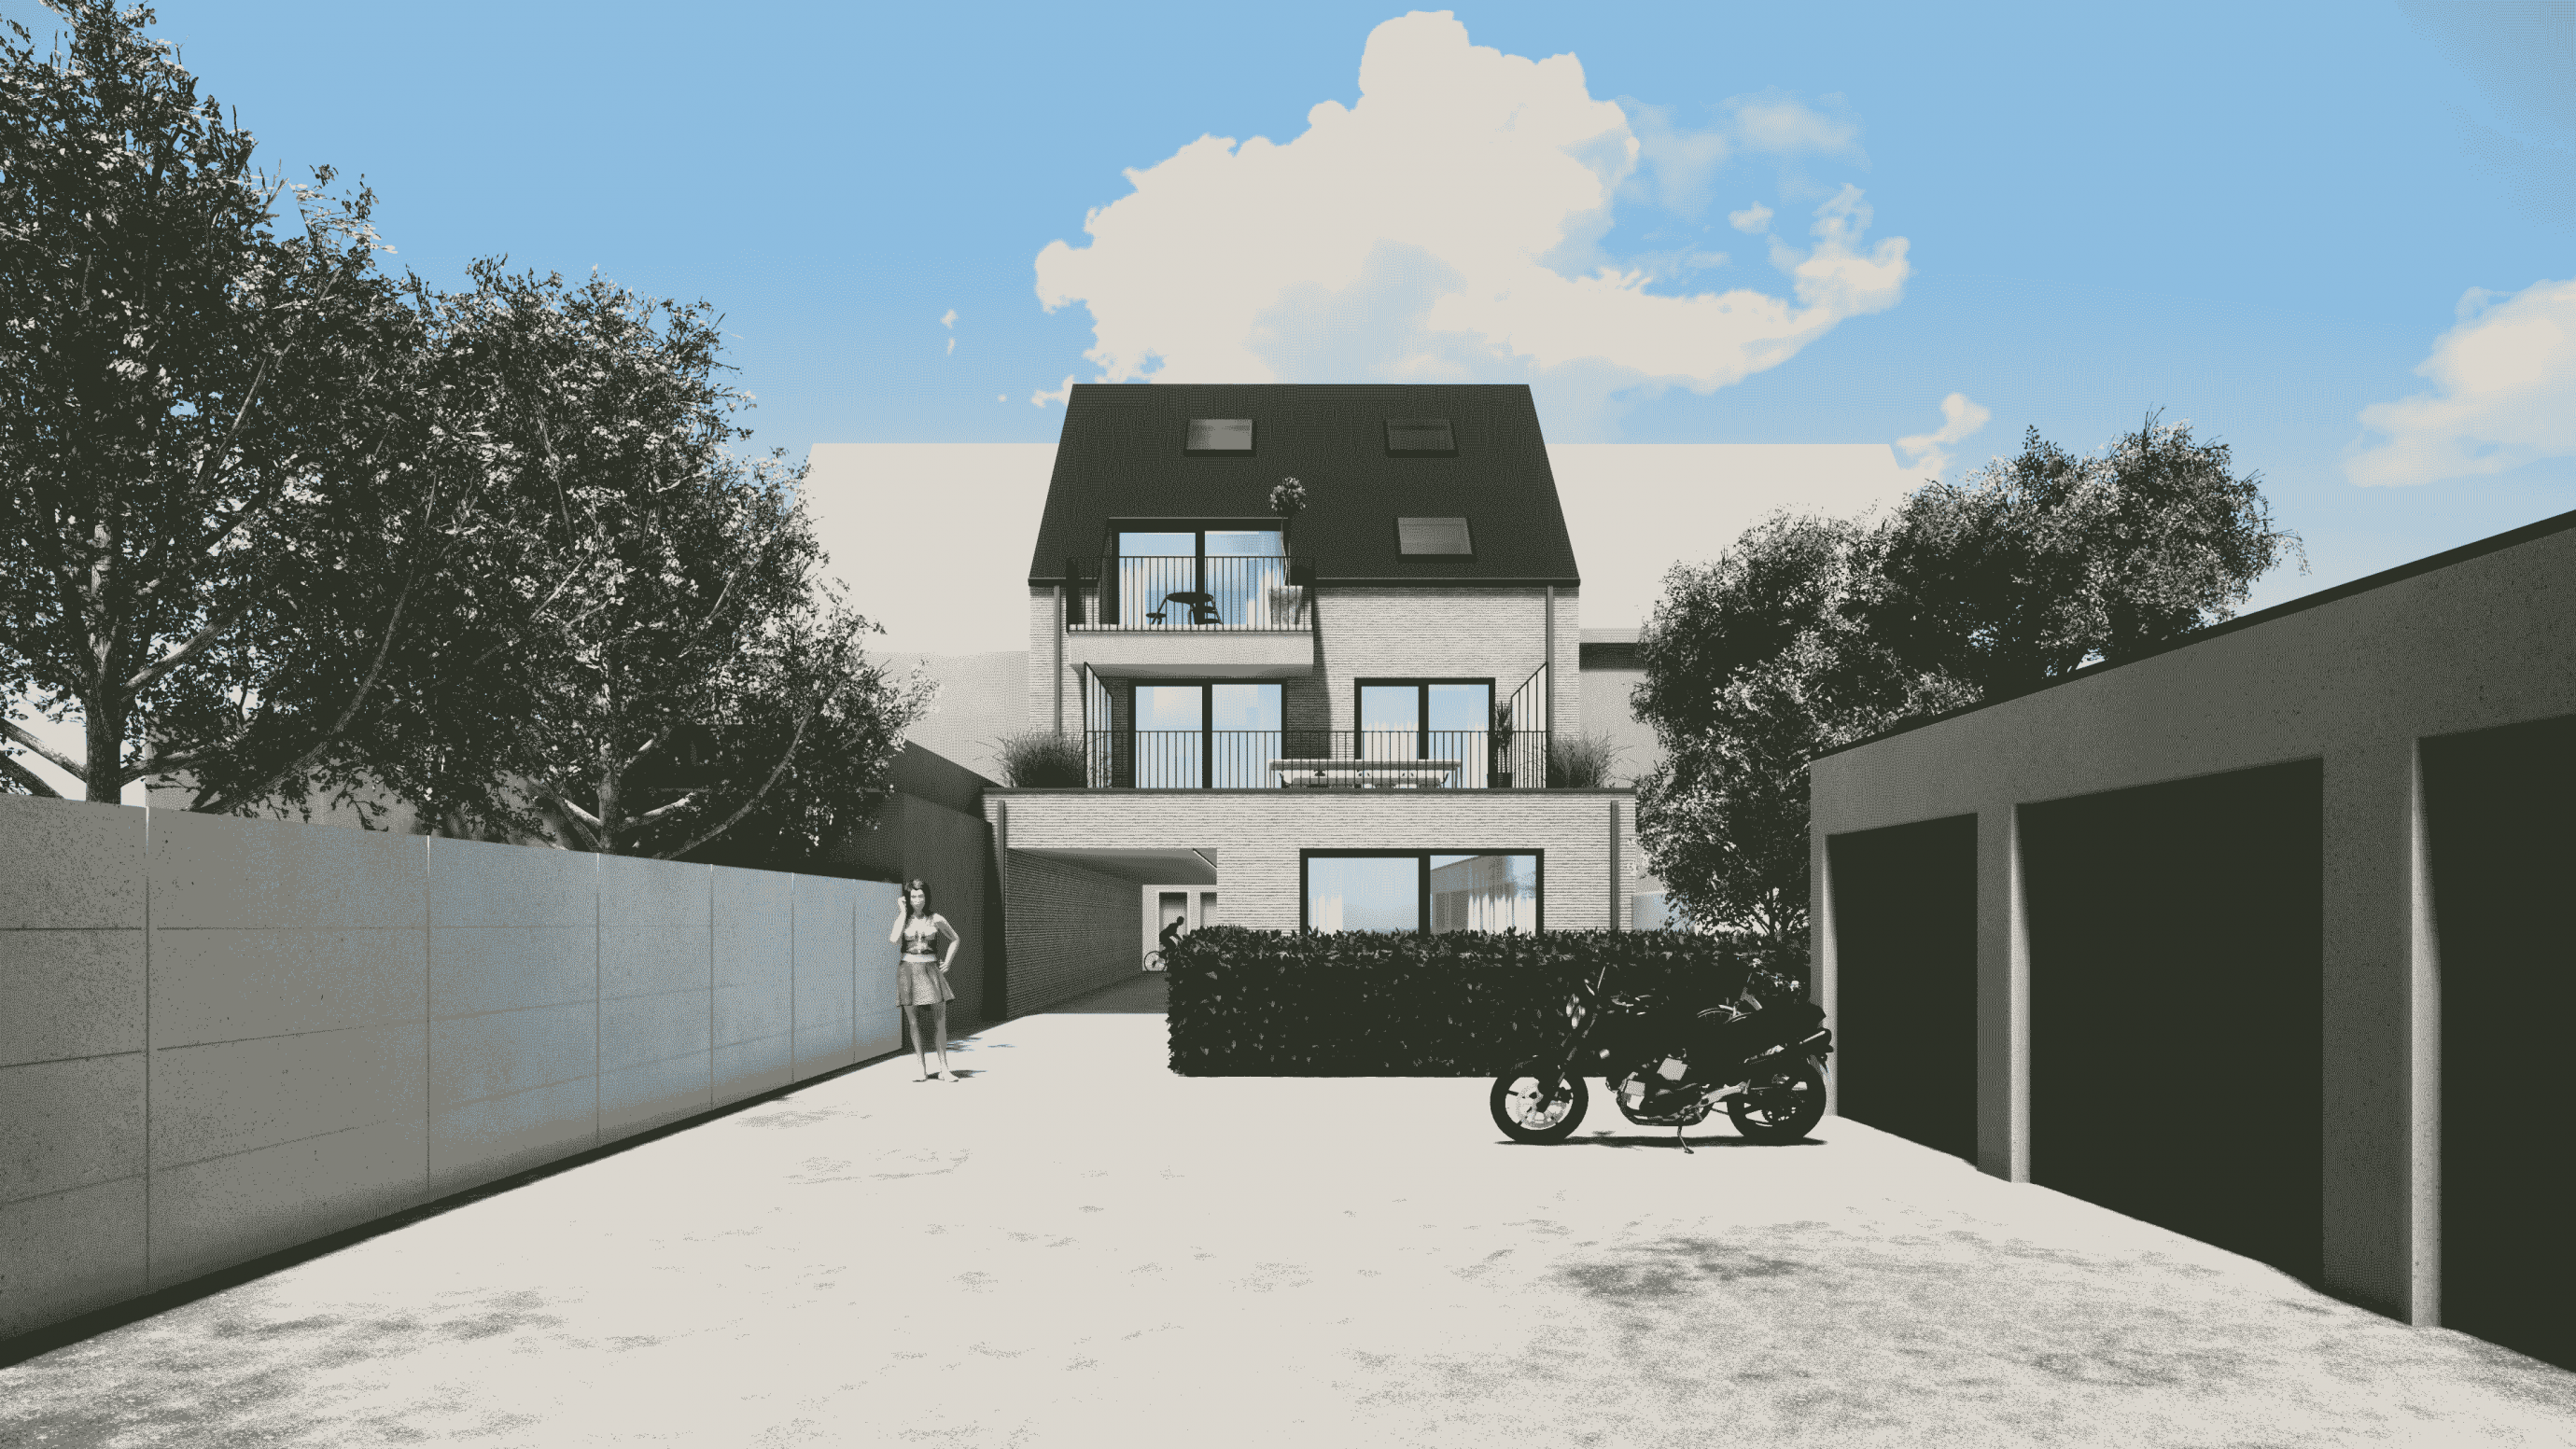 bt-projects appartementen Roeselare - Roeselare